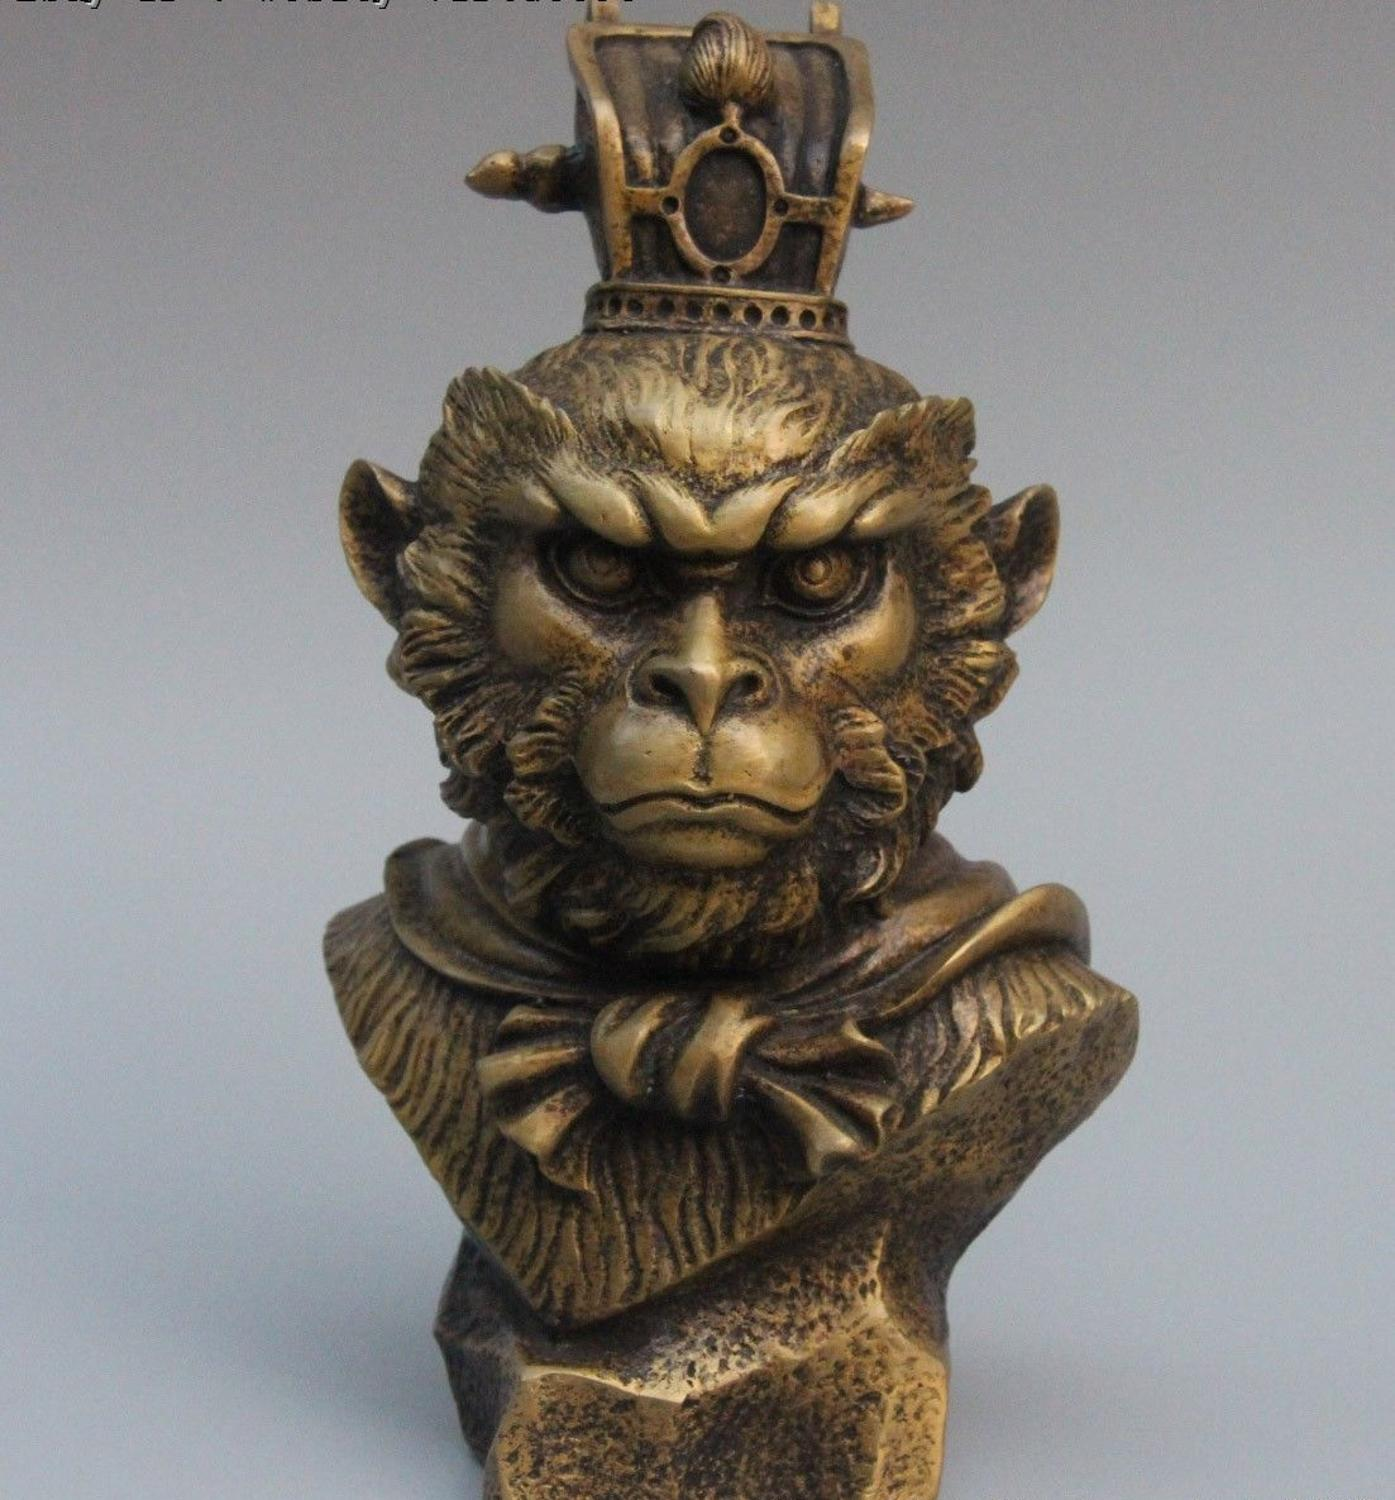 China Myths Pure Bronze Copper Monkey Kings mahatma Sun Wukong SunWuKong StatueChina Myths Pure Bronze Copper Monkey Kings mahatma Sun Wukong SunWuKong Statue